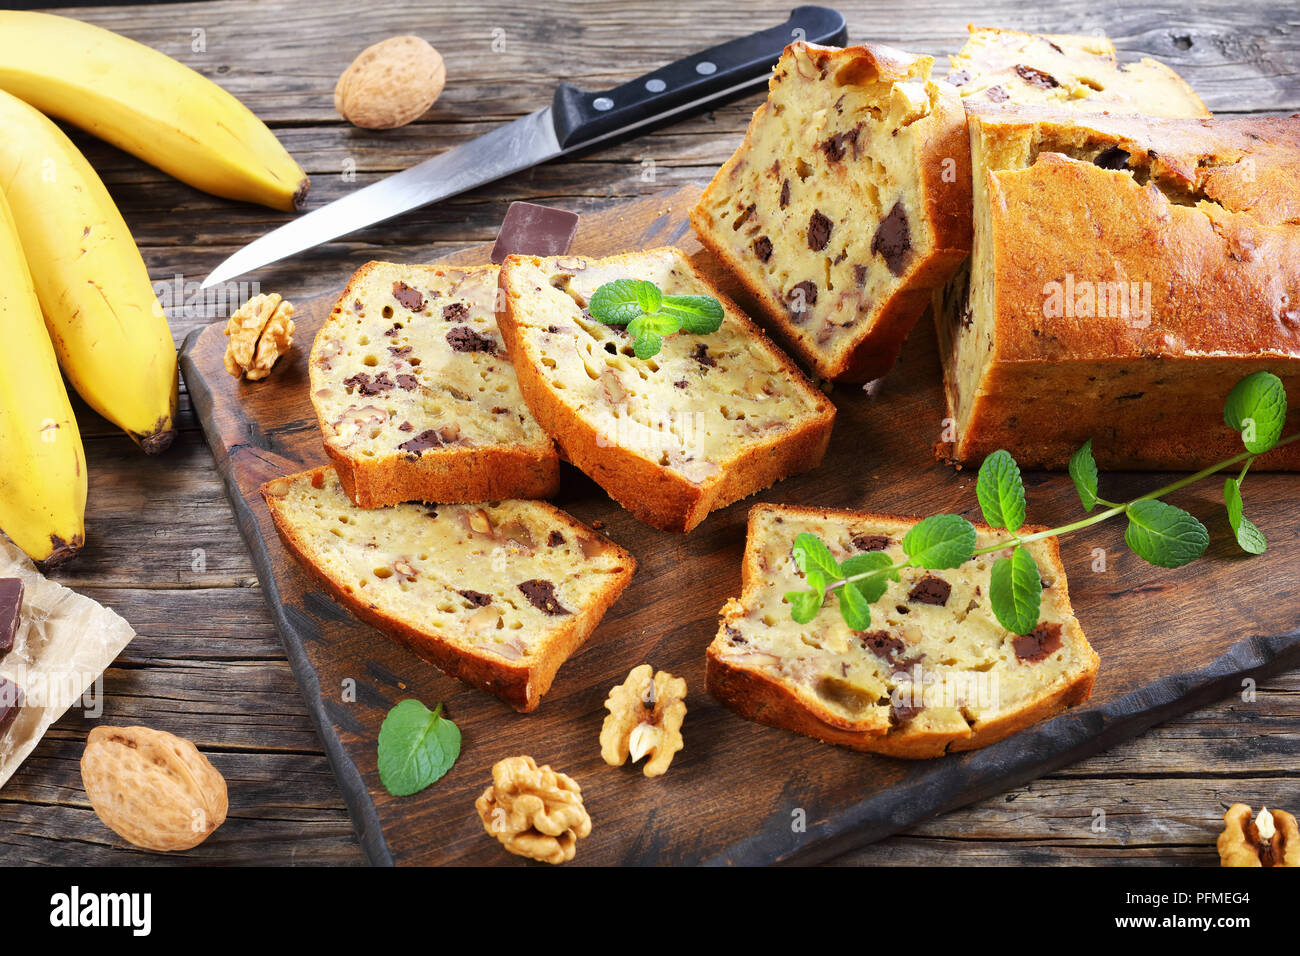 freshly baked delicious banana bread with walnuts and chocolate pieces cut in slices on cutting board. ingredients on rustic wooden table, american cu - Stock Image